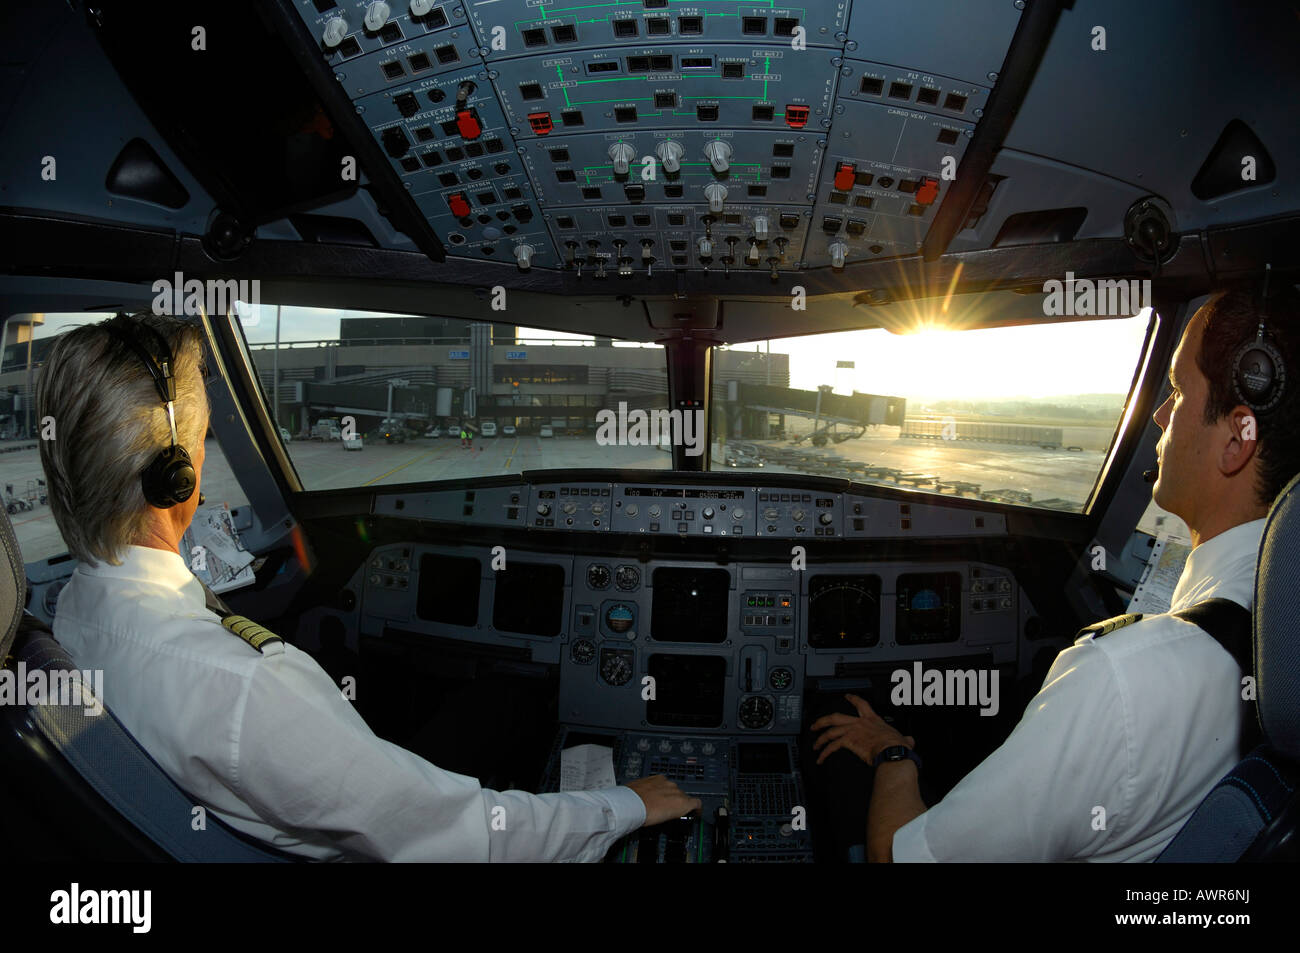 Pilots in the cockpit of an Airbus 321, taxiing to gate after landing - Stock Image